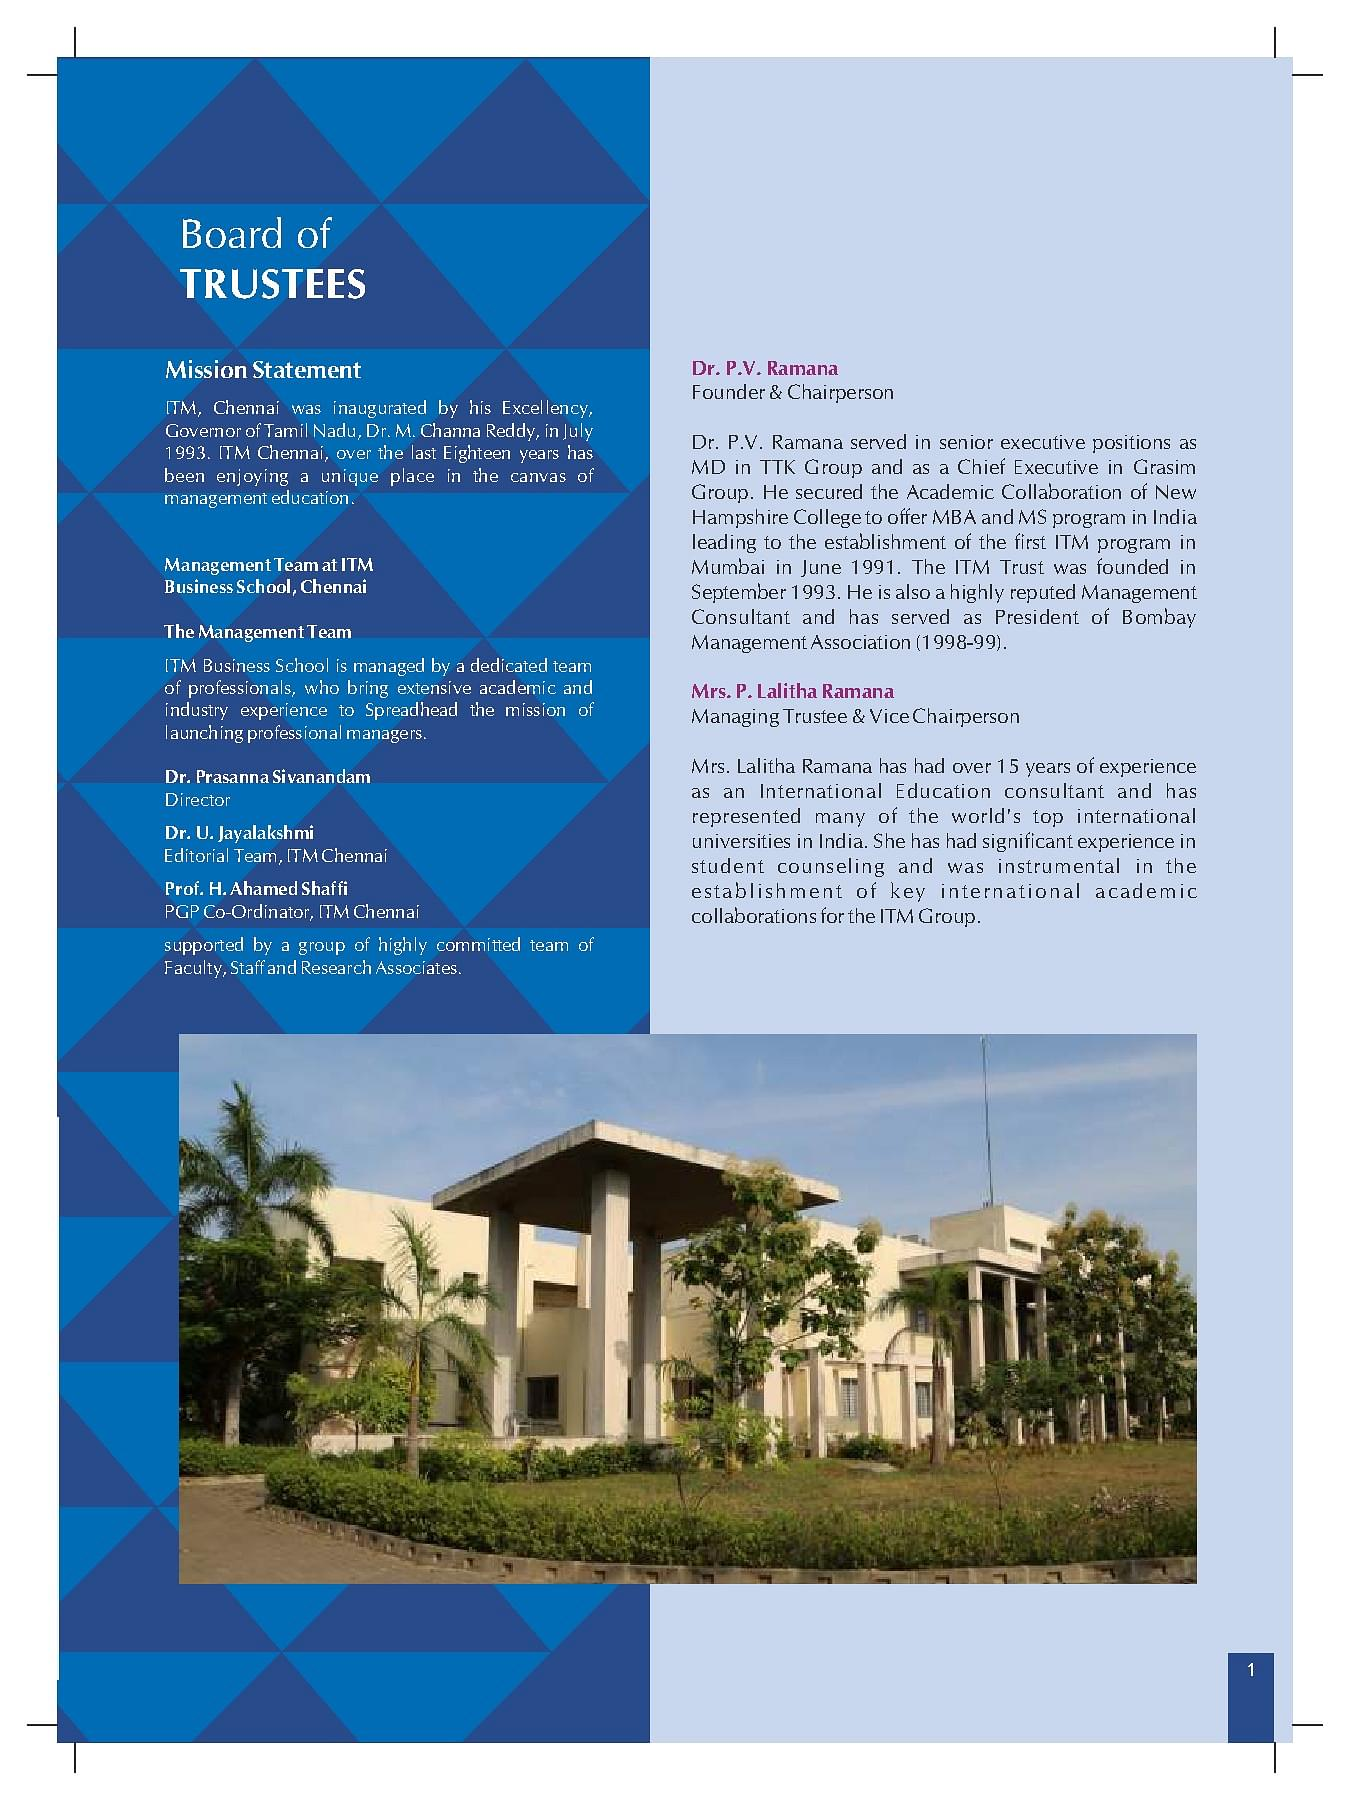 ITM Business School, Chennai - Admissions, Contact, Website